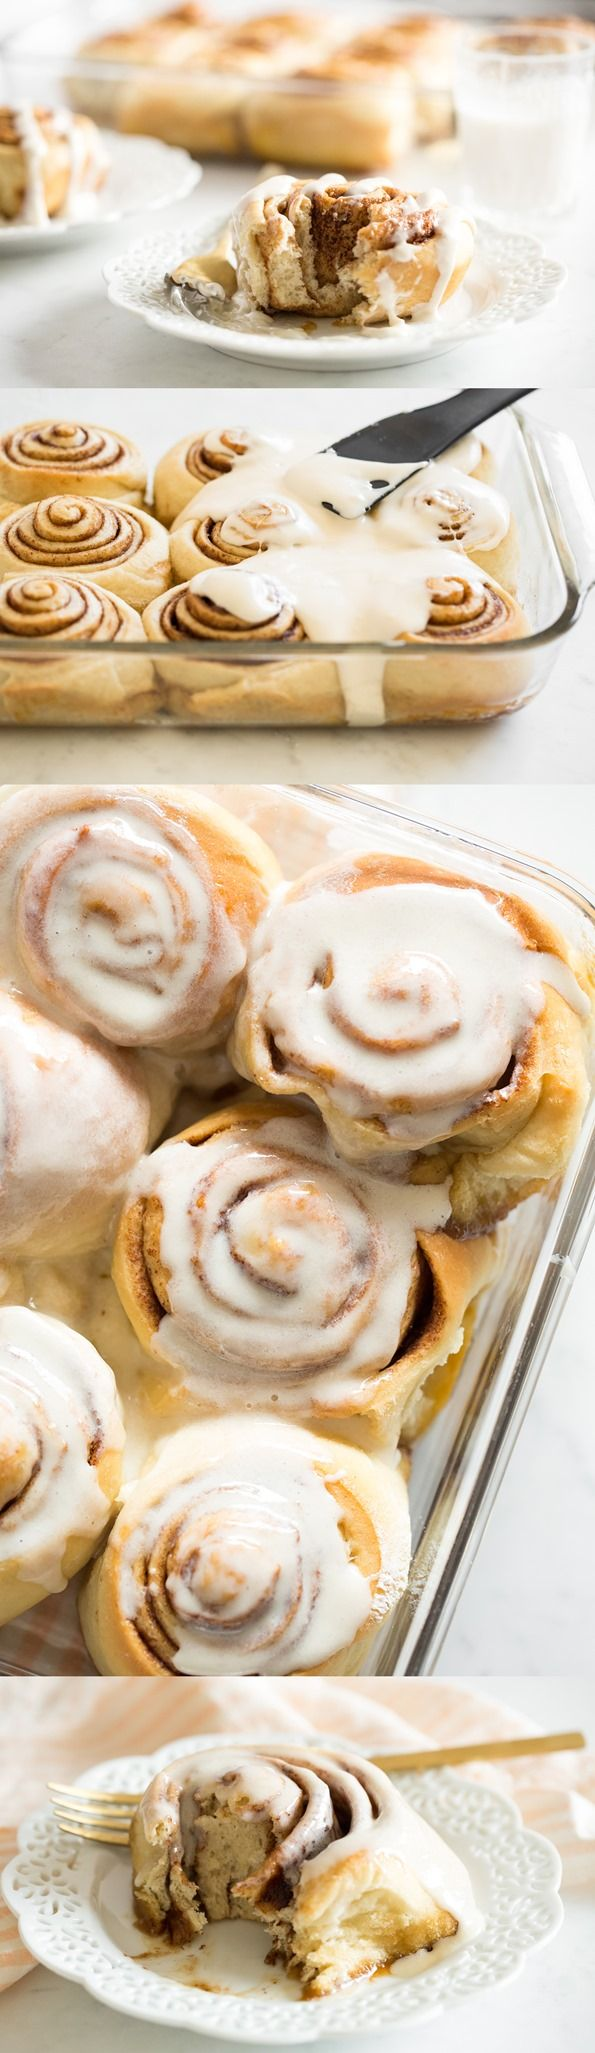 VEGAN CINNAMON ROLLS (with a make-ahead option). You won't believe how good these are!! Click photo for the full recipe.